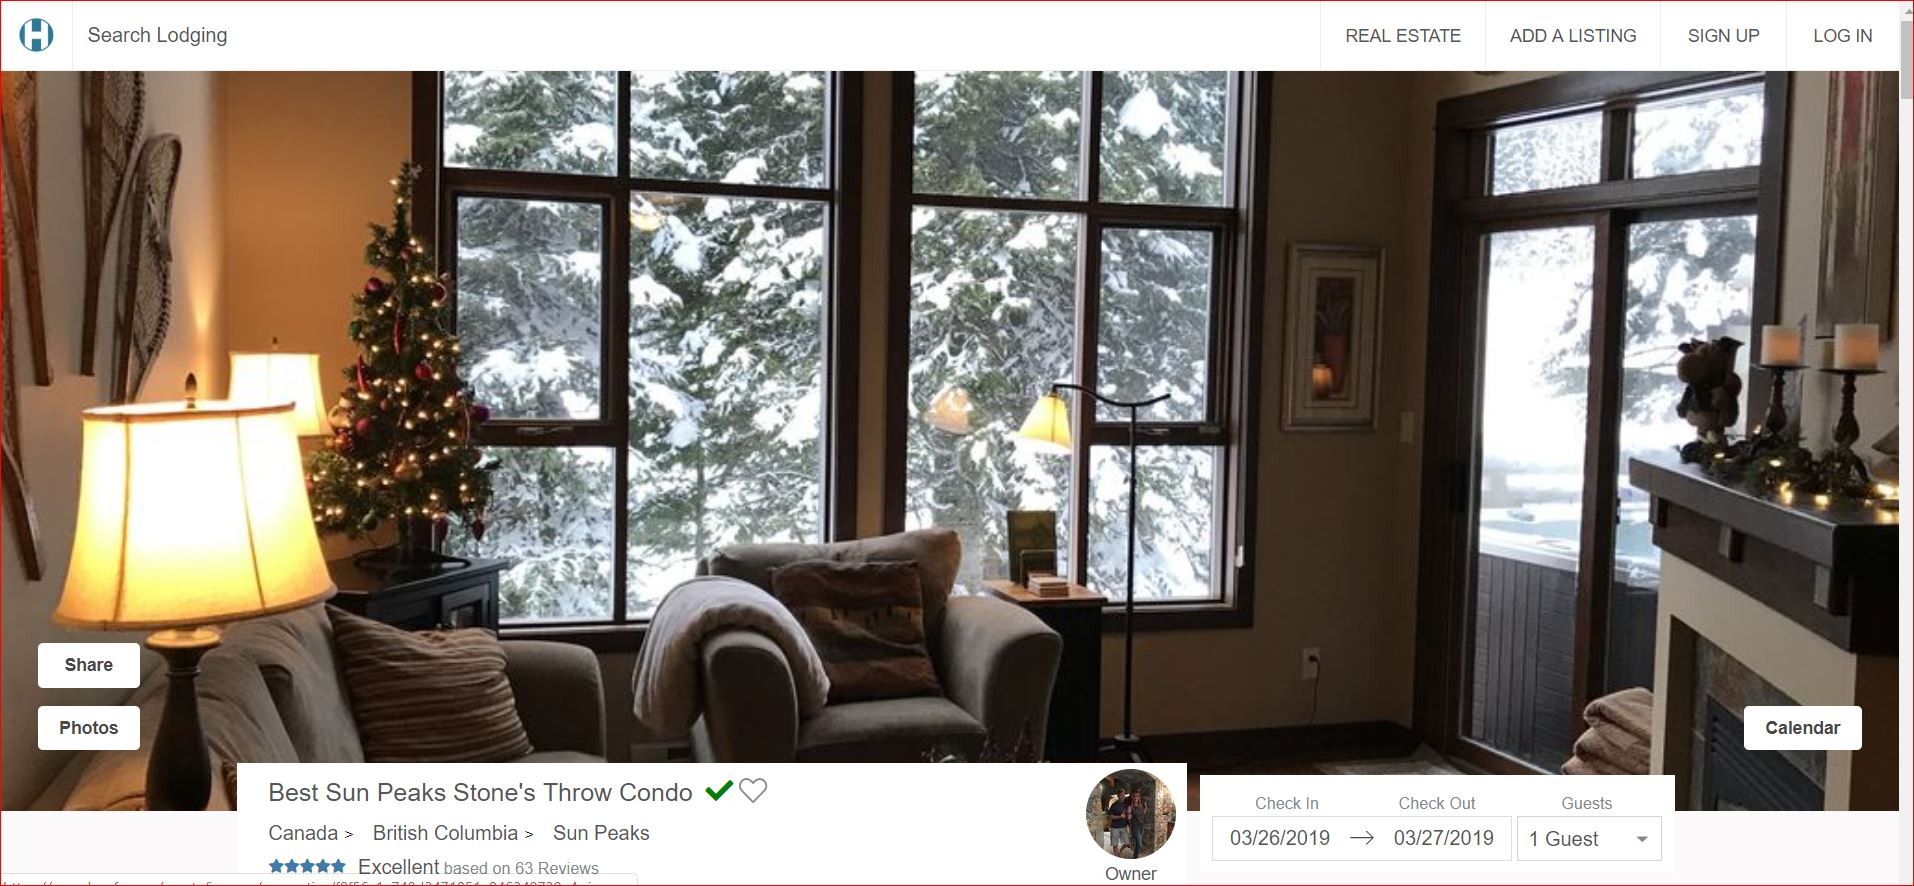 Houfy Sun Peaks Vacation Rentals, and thousands of other properties worldwide